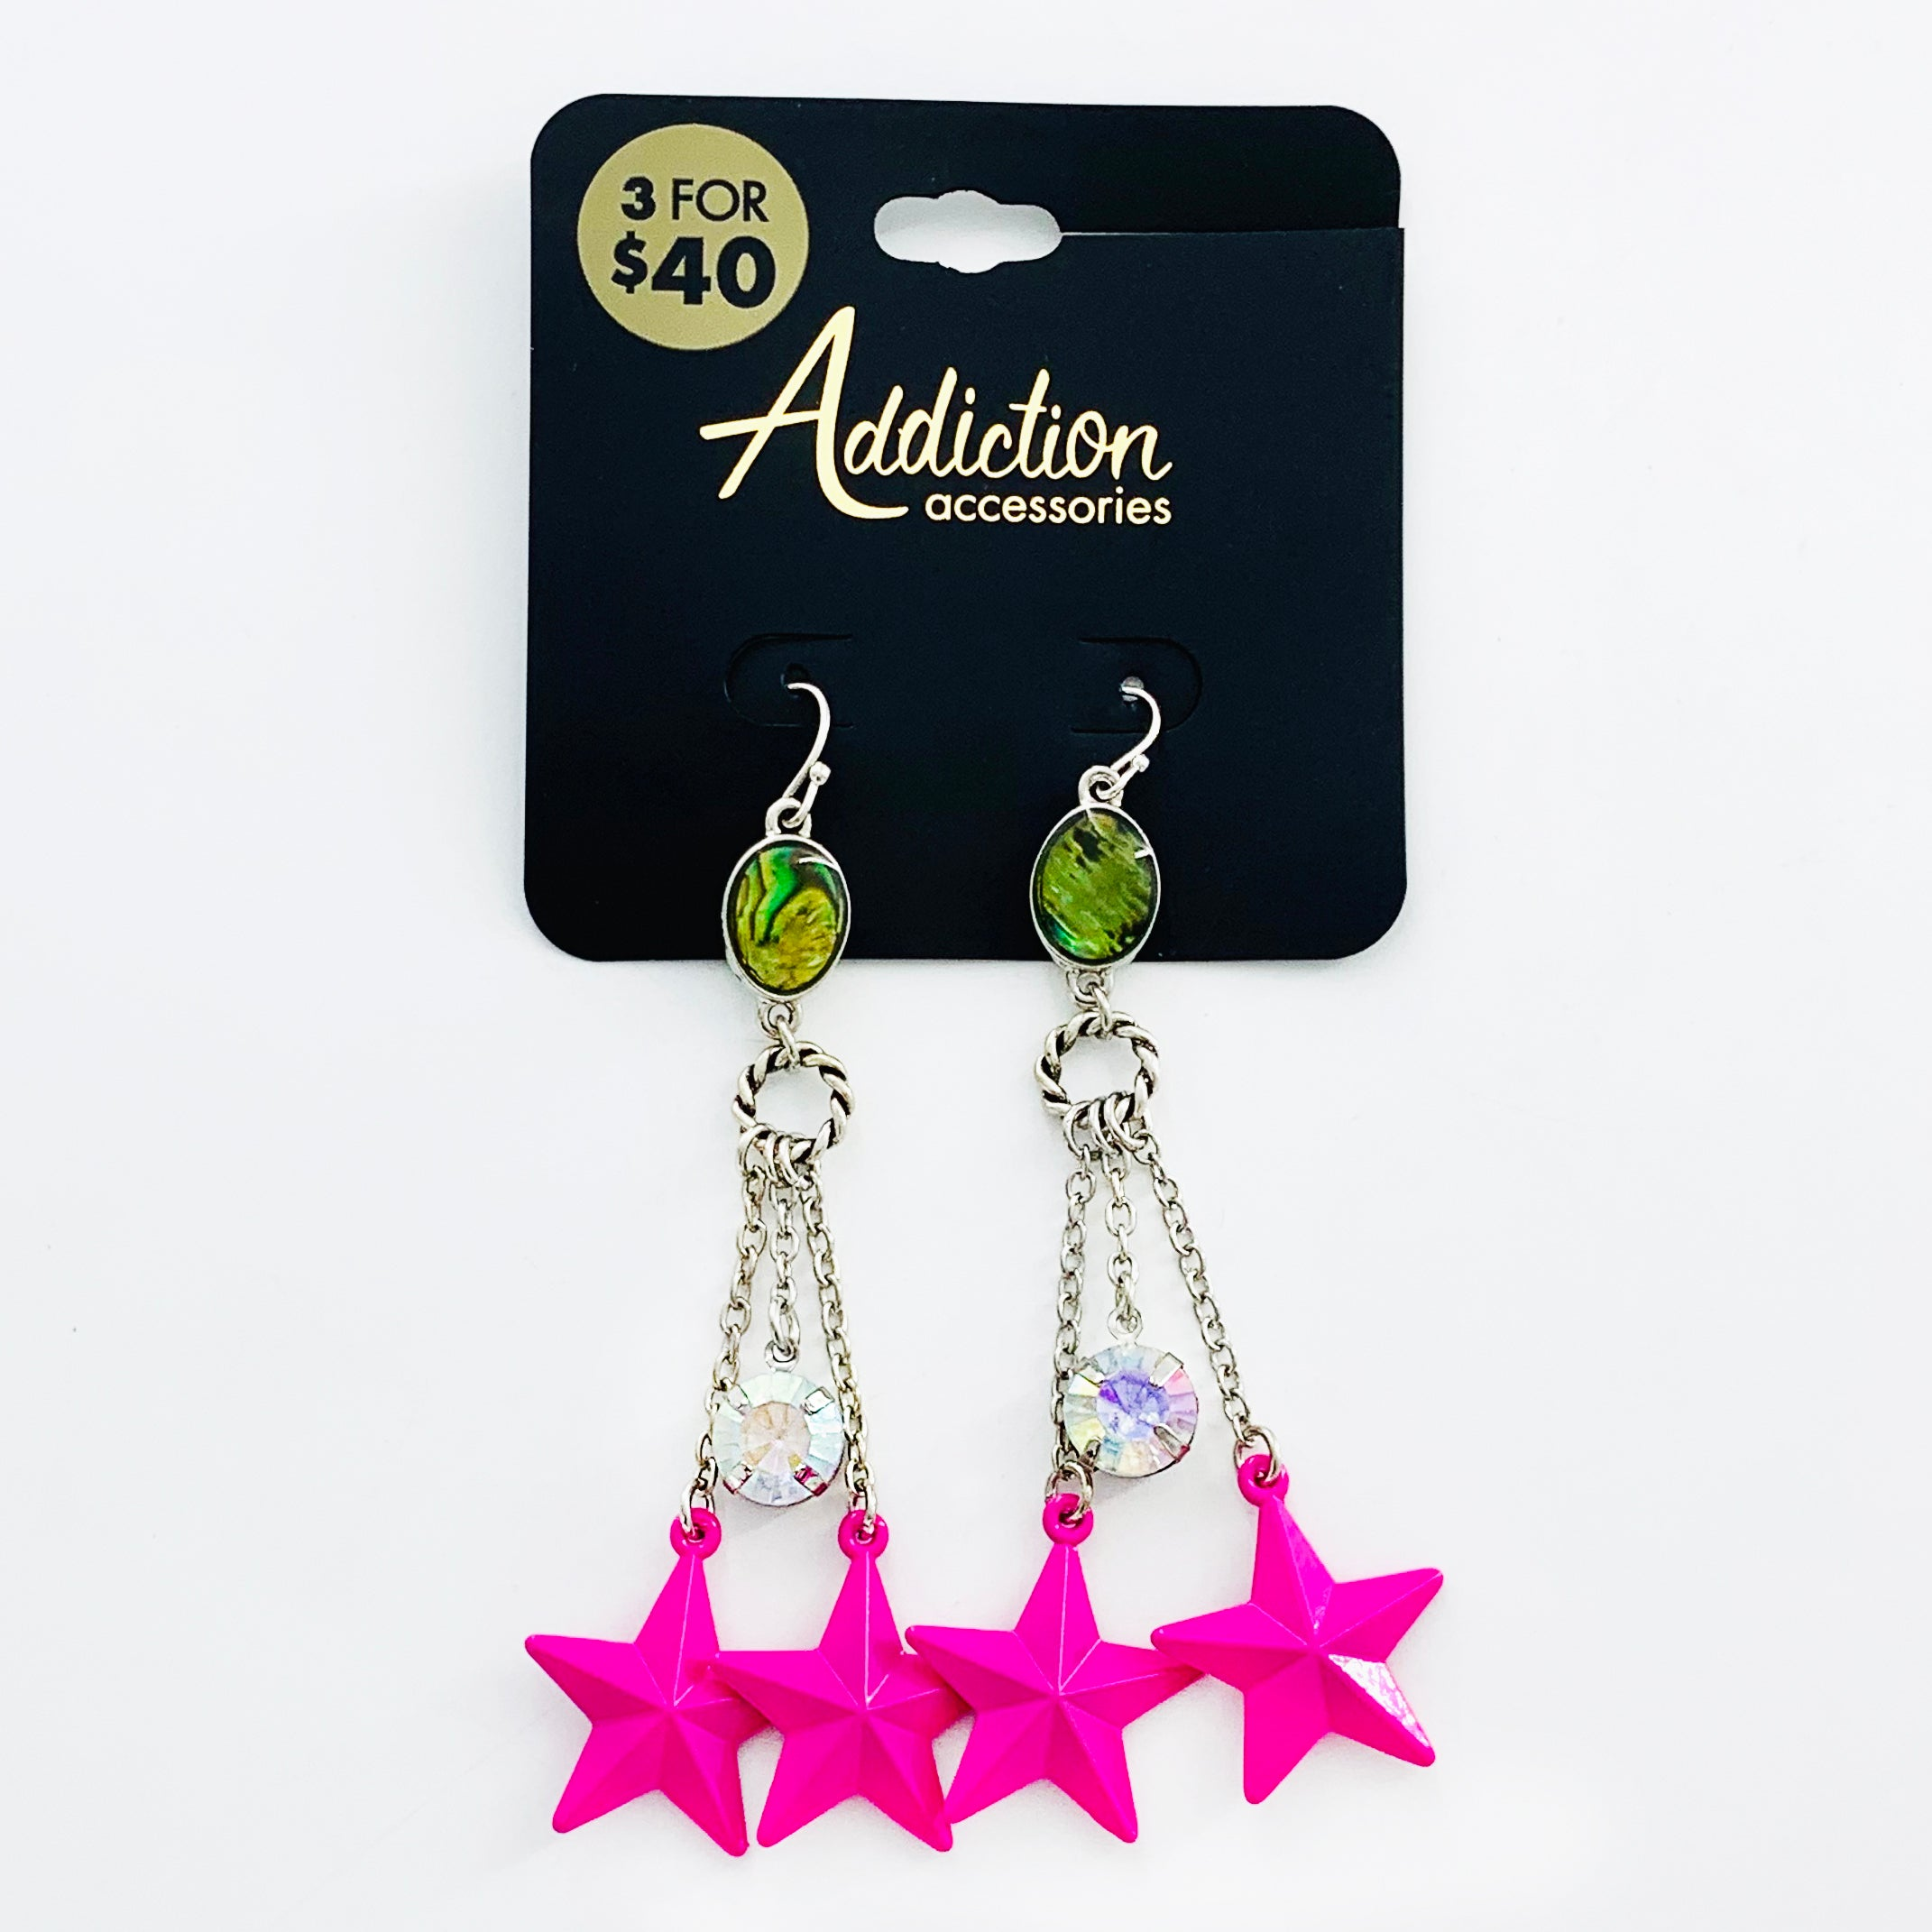 Hot Pink stars with dangling chains and gems